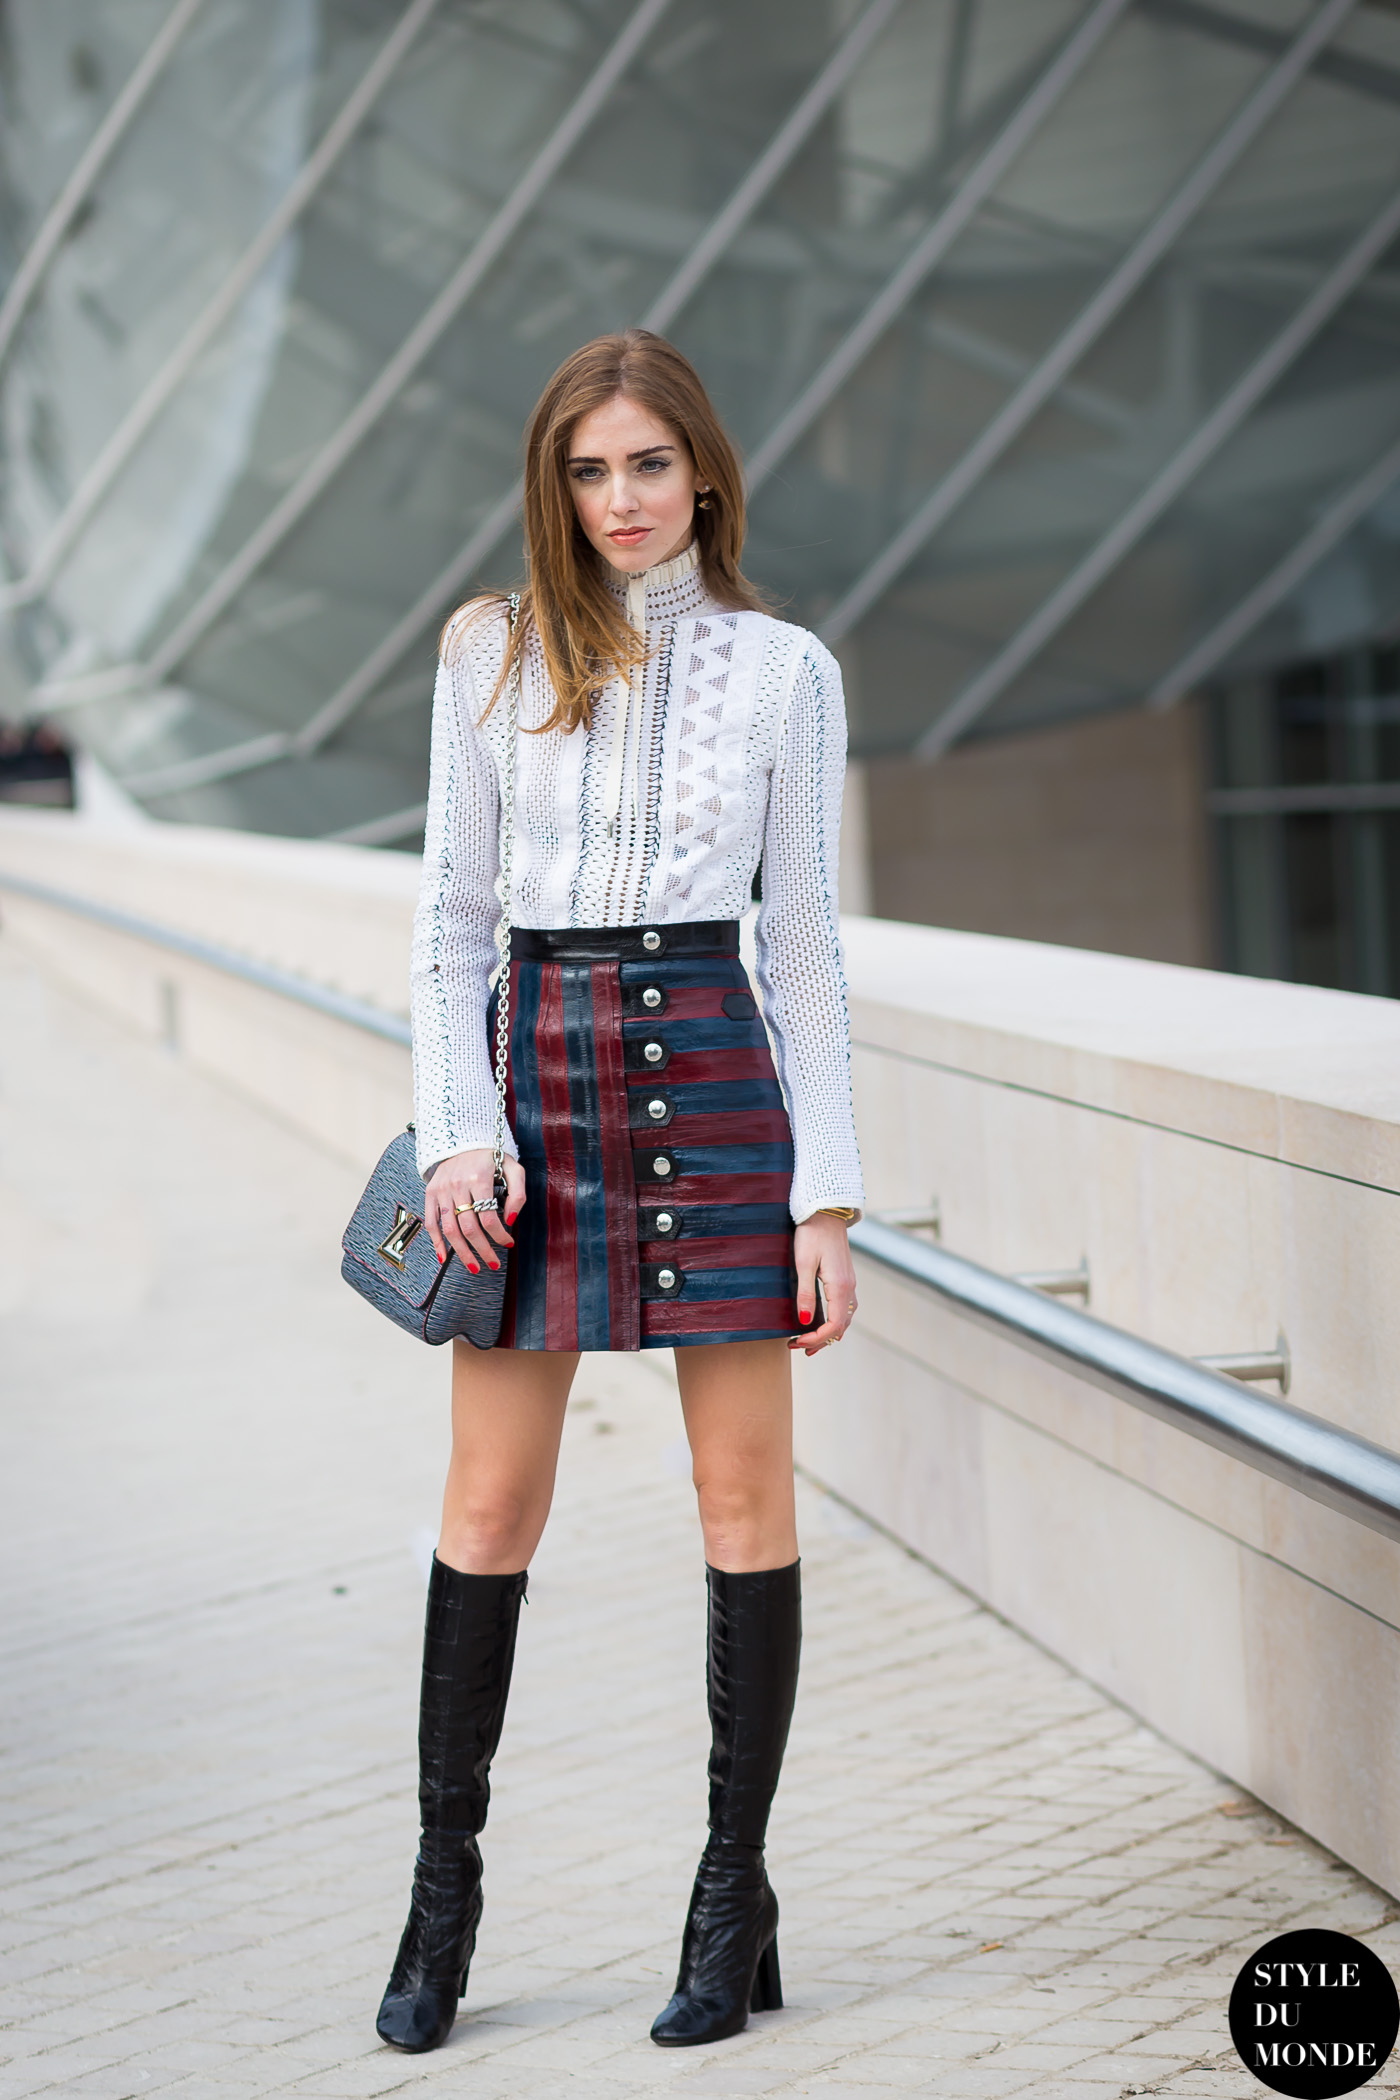 Paris fashion week fw 2015 street style chiara ferragni style du monde street style street Fashion style october 2015